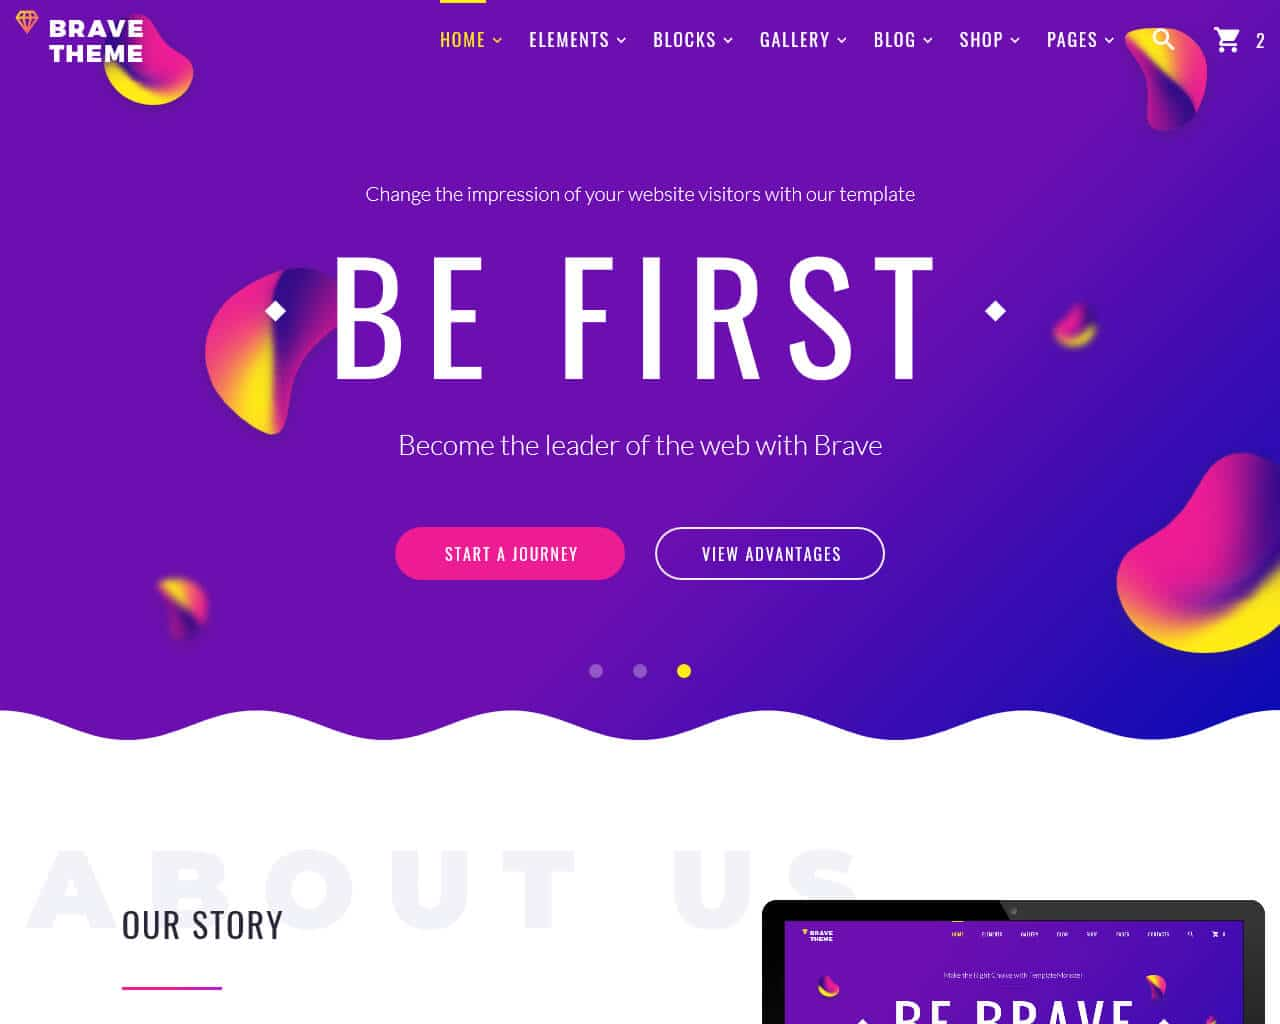 Brave Theme Website Template